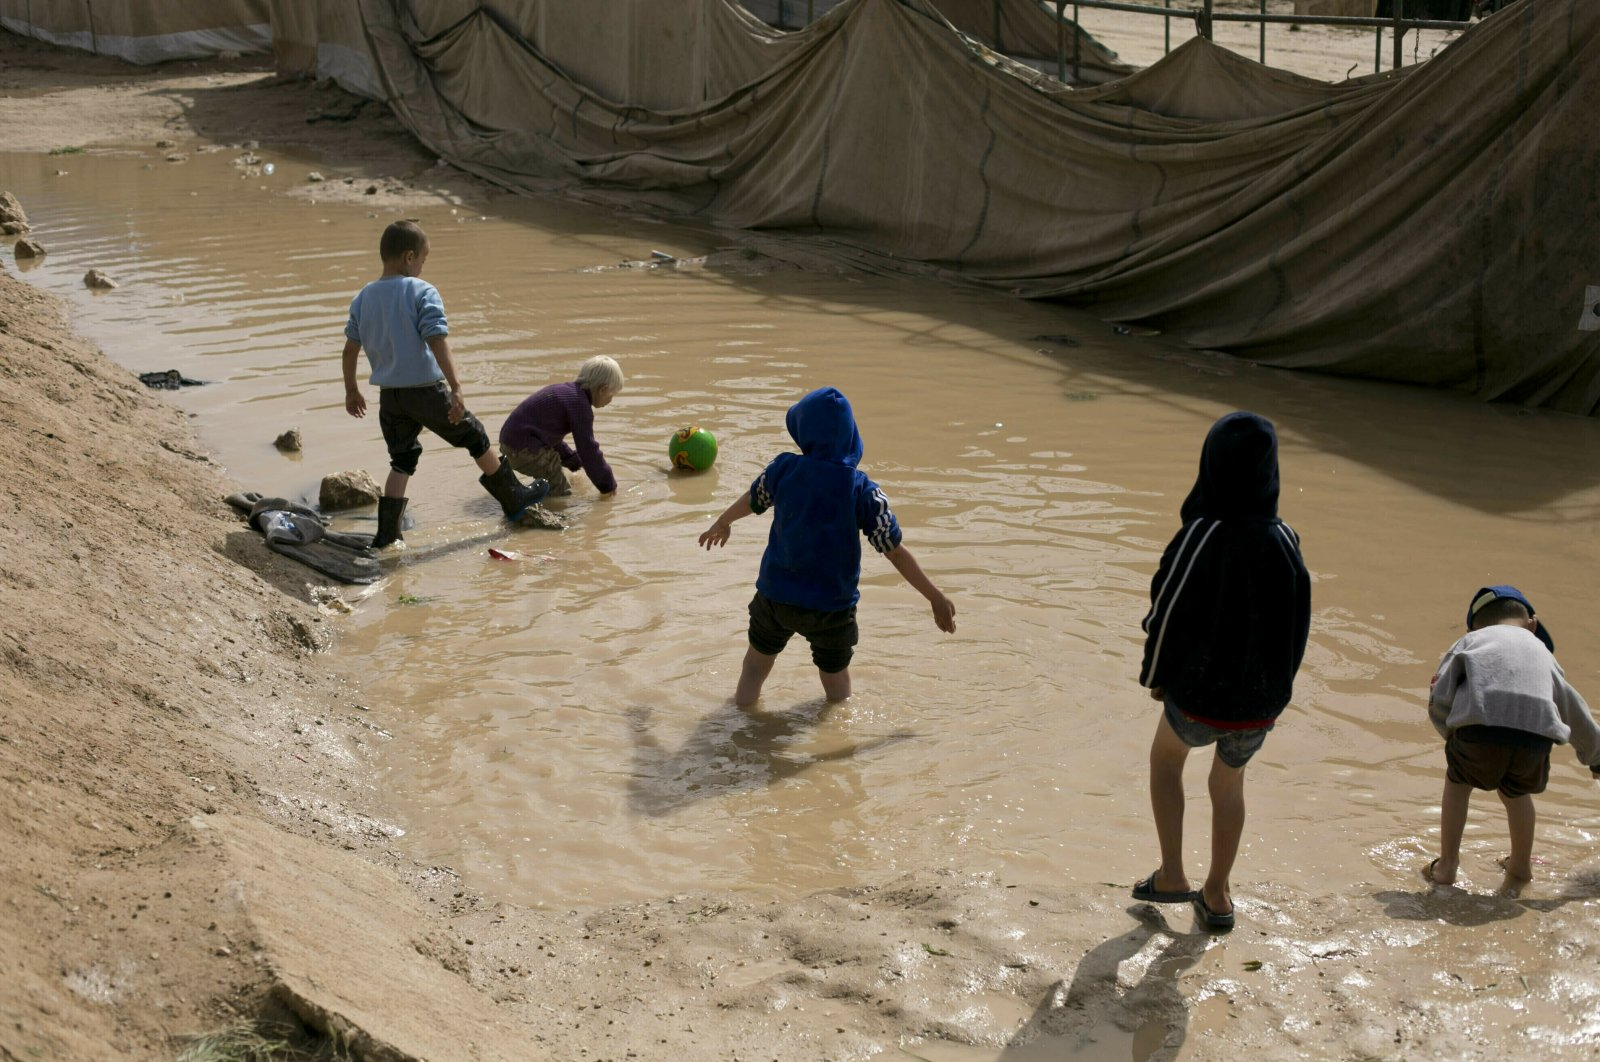 Children play in a mud puddle in the section for foreign families at Al-Hol camp in Hasakeh province, Syria. March 31, 2019 (AP File Photo)